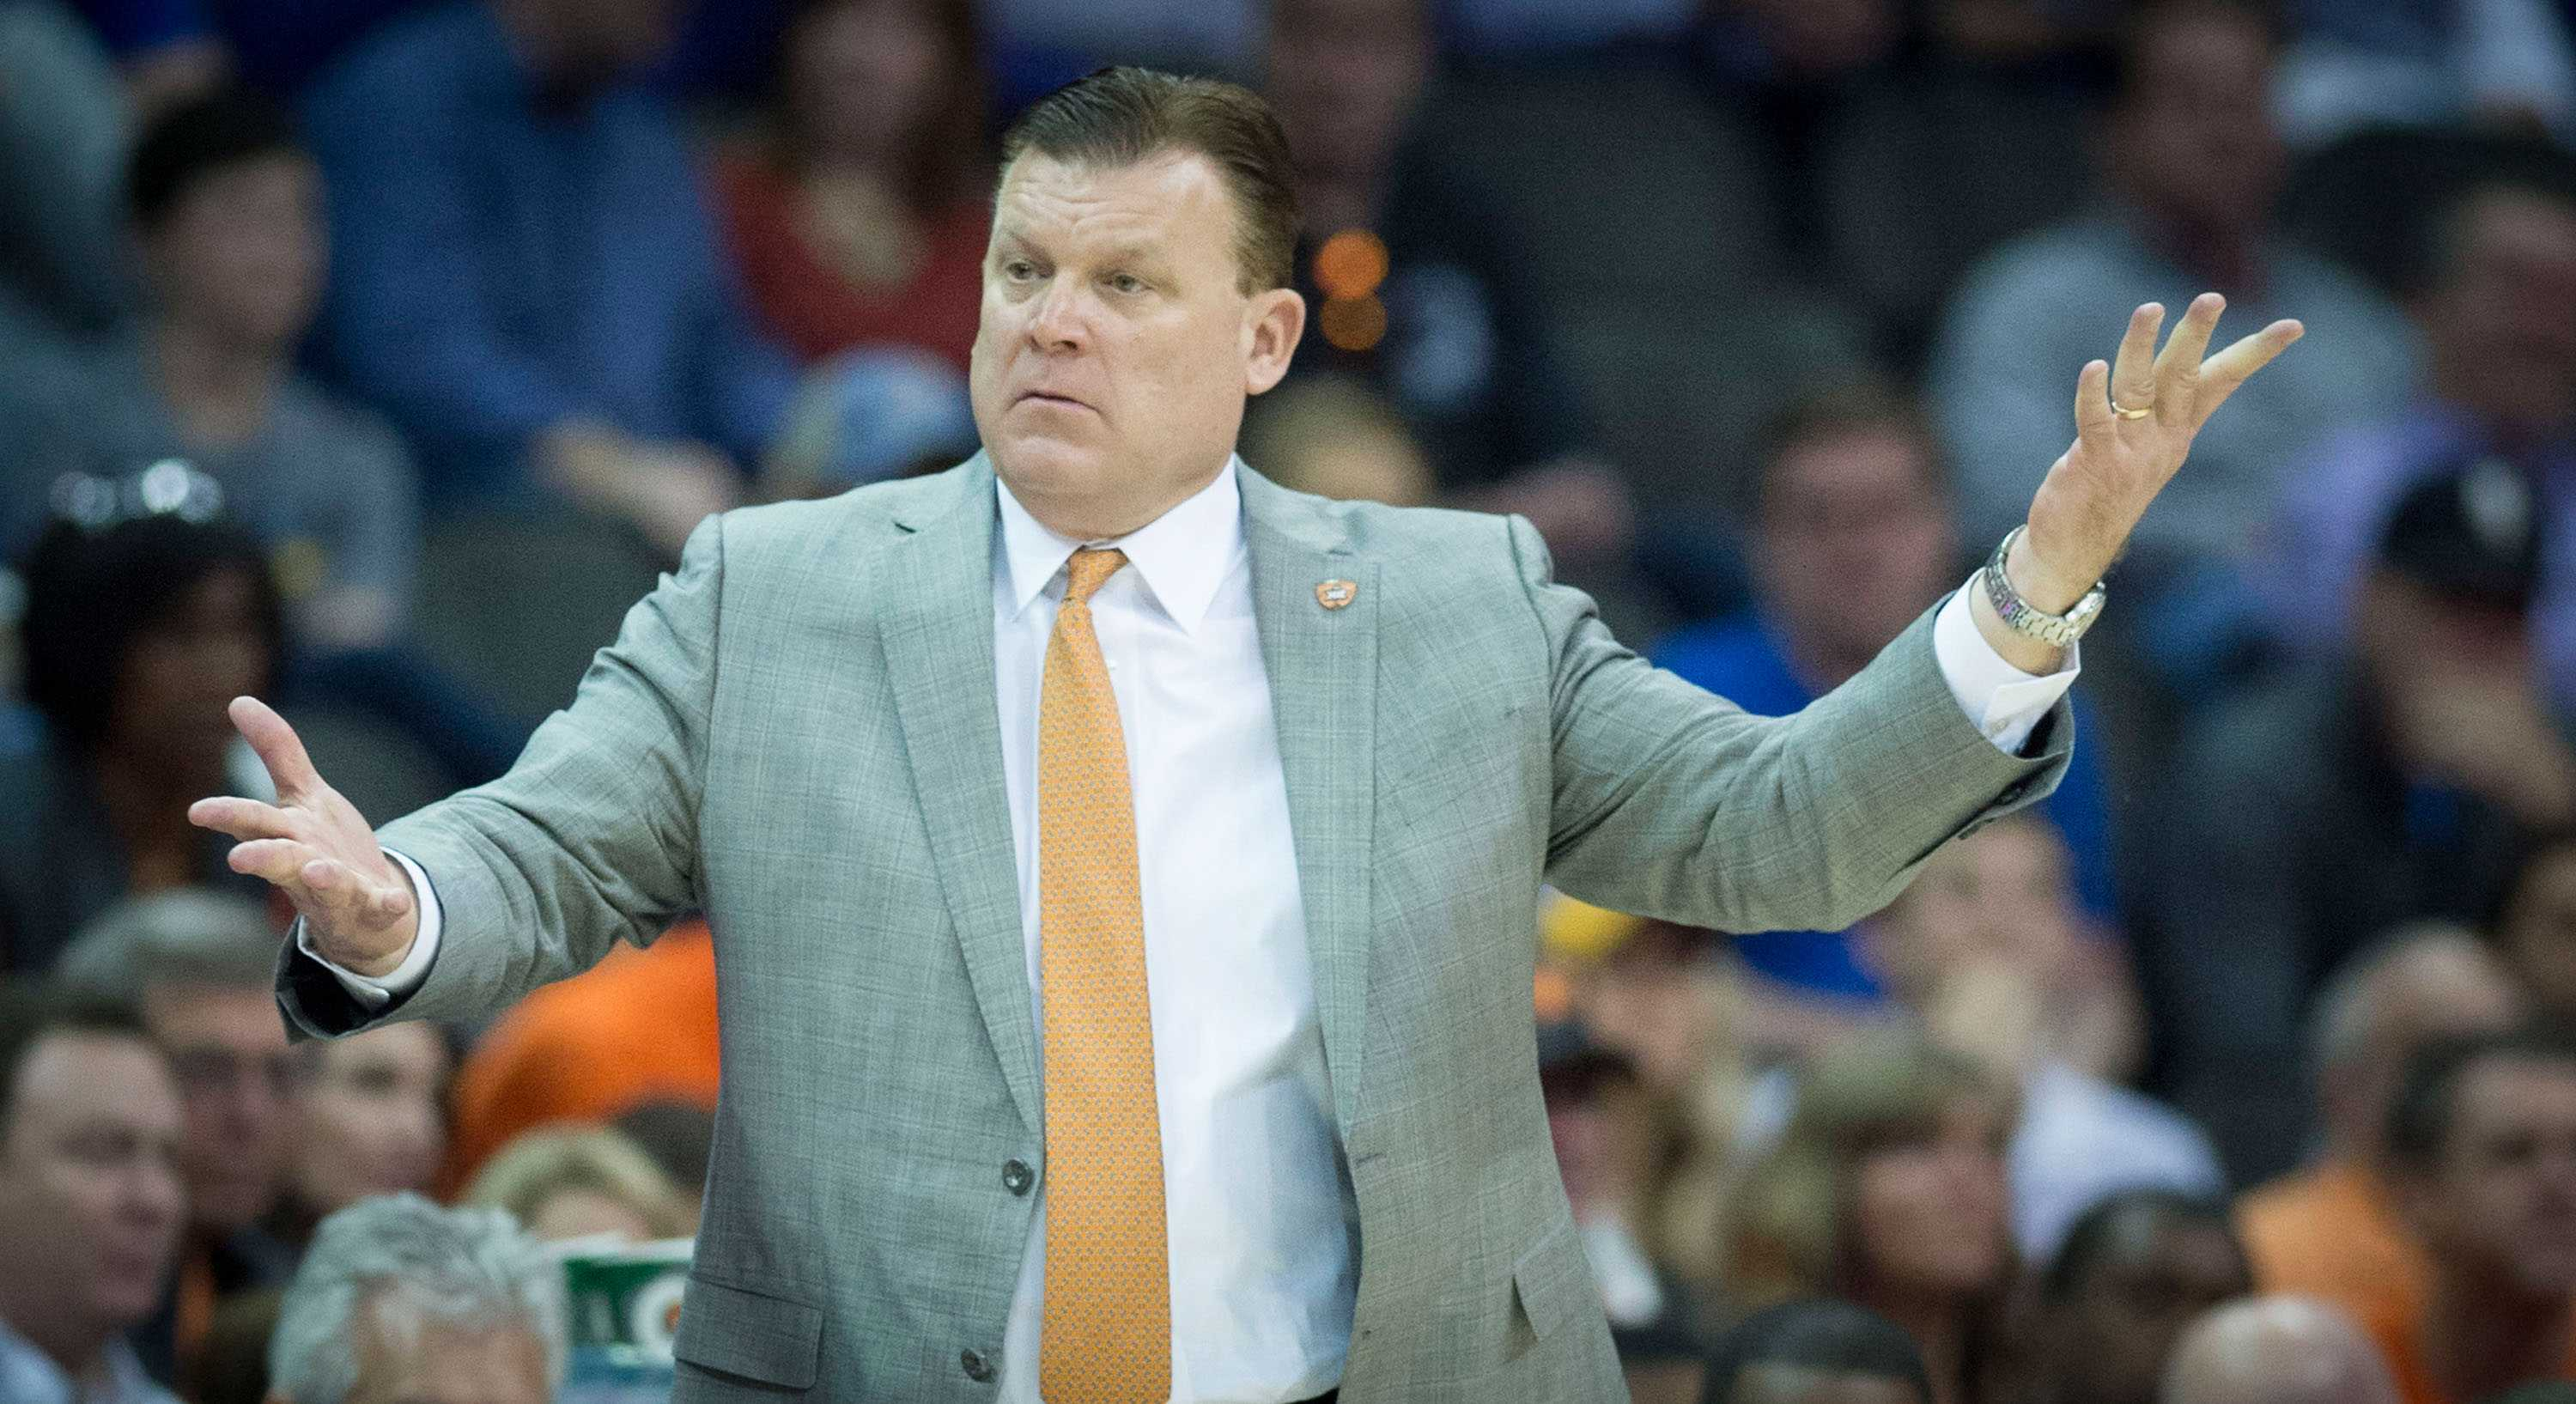 Illinois men's head basketball coach Brad Underwood is now faced with Jeremiah Tilmon requesting a release from his National Letter of Intent.